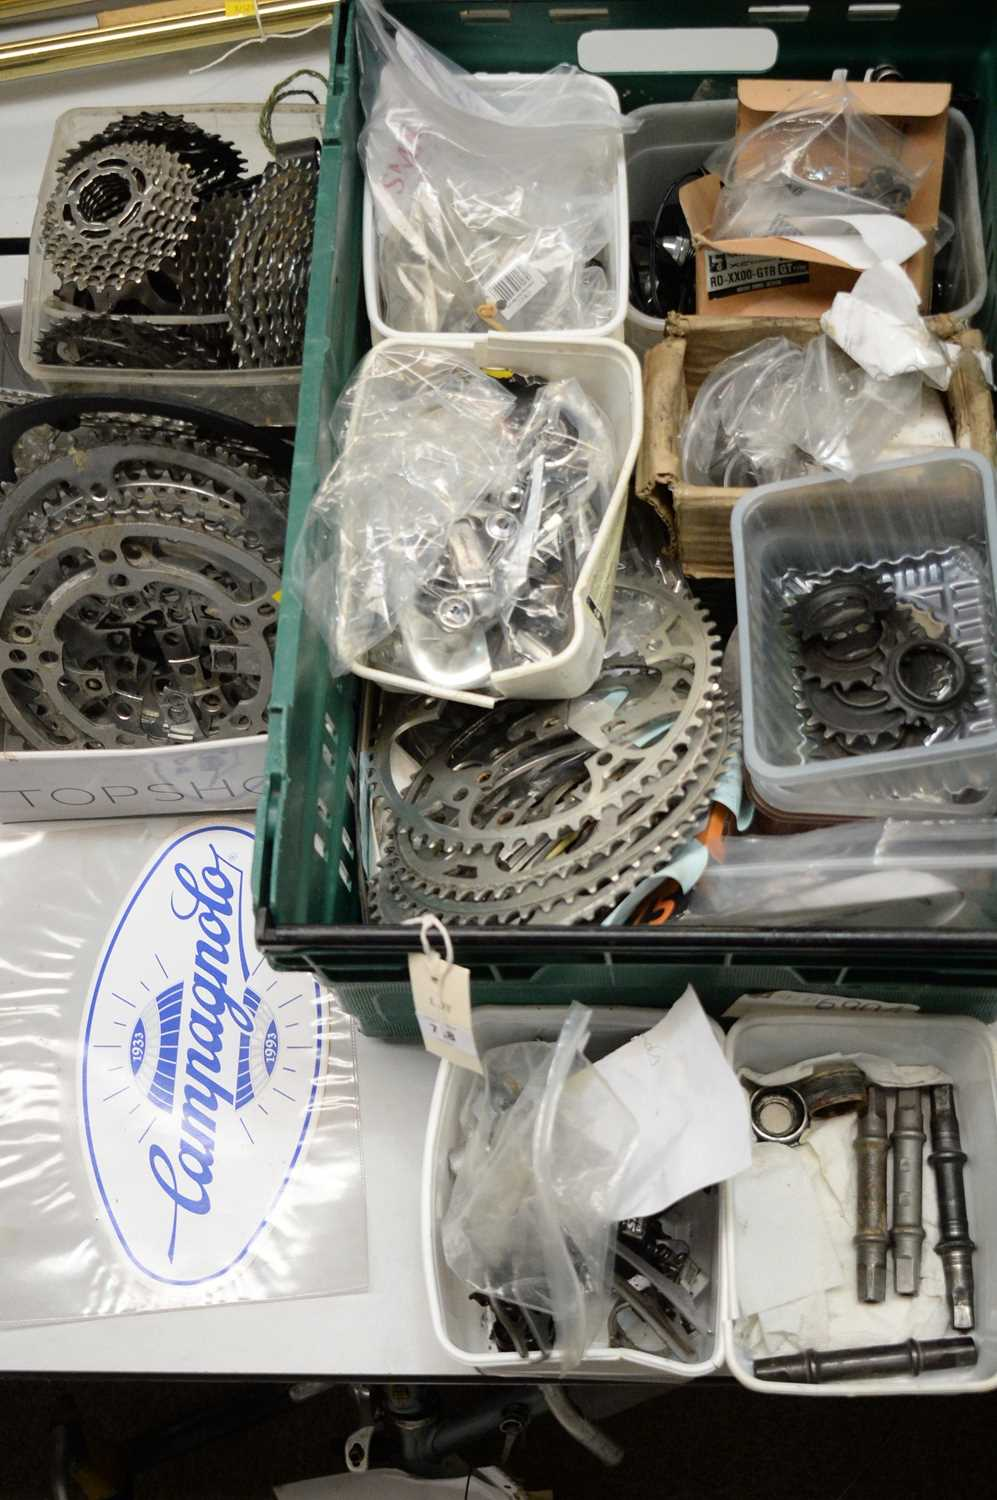 Lot 728 - Road and mountain bike chainrings, and miscellaneous items.